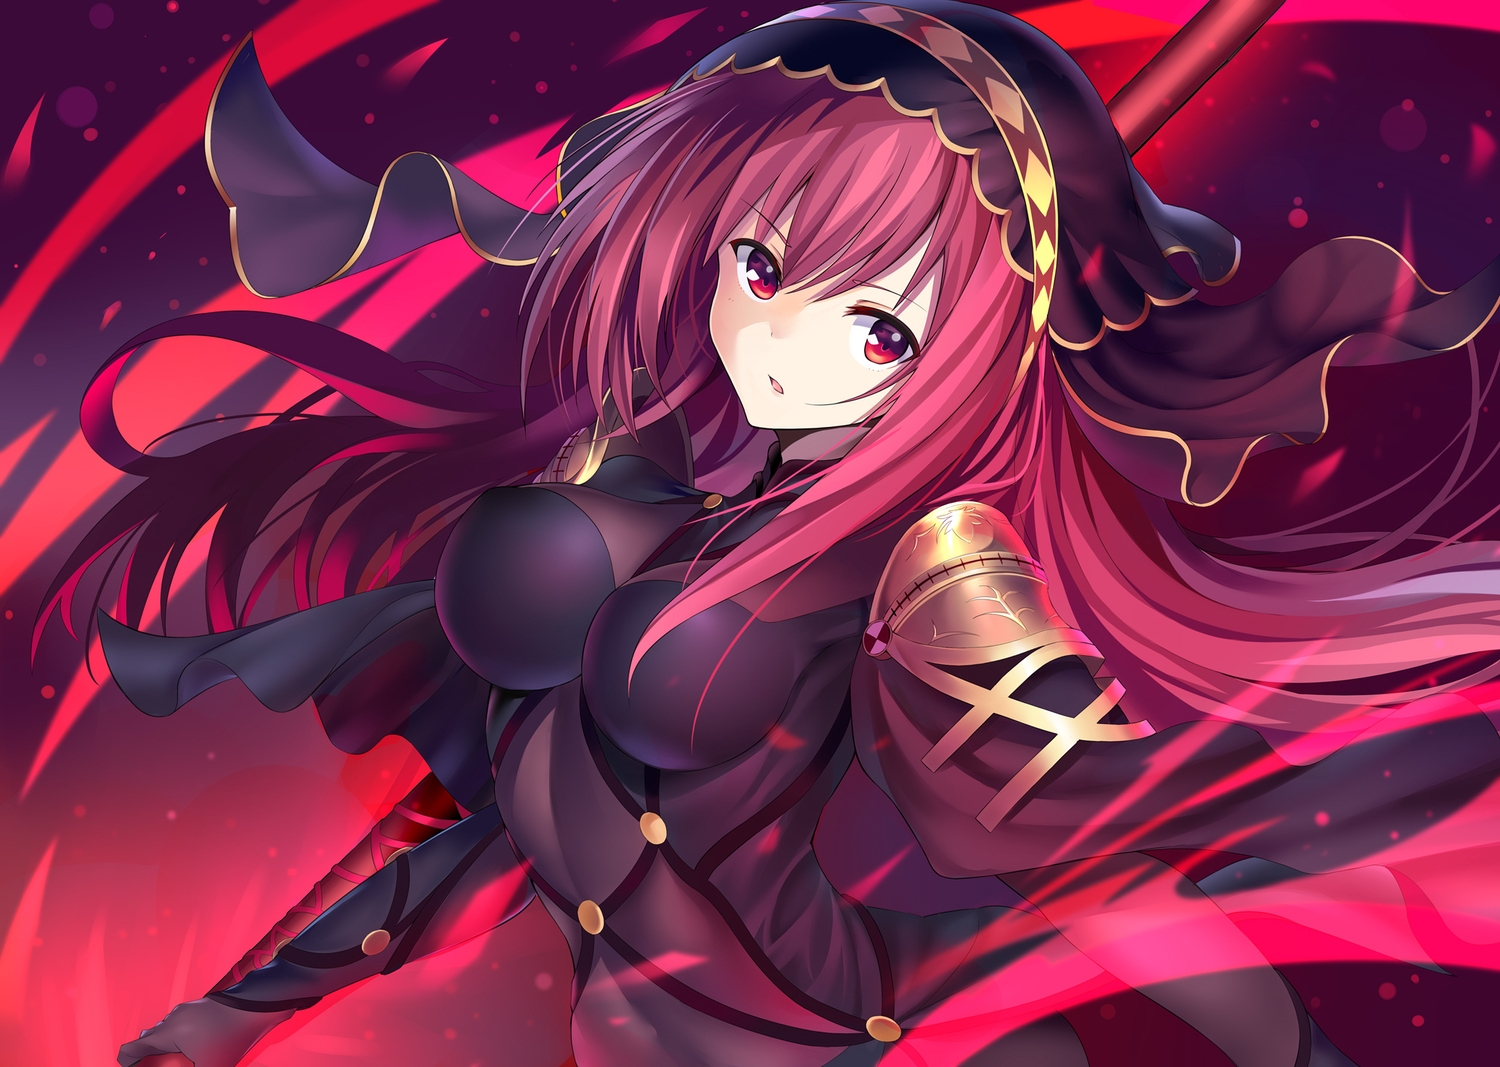 bodysuit breasts fate/grand_order fate_(series) headdress long_hair nagiha_kuten red_eyes red_hair scathach_(fate/grand_order) spear weapon